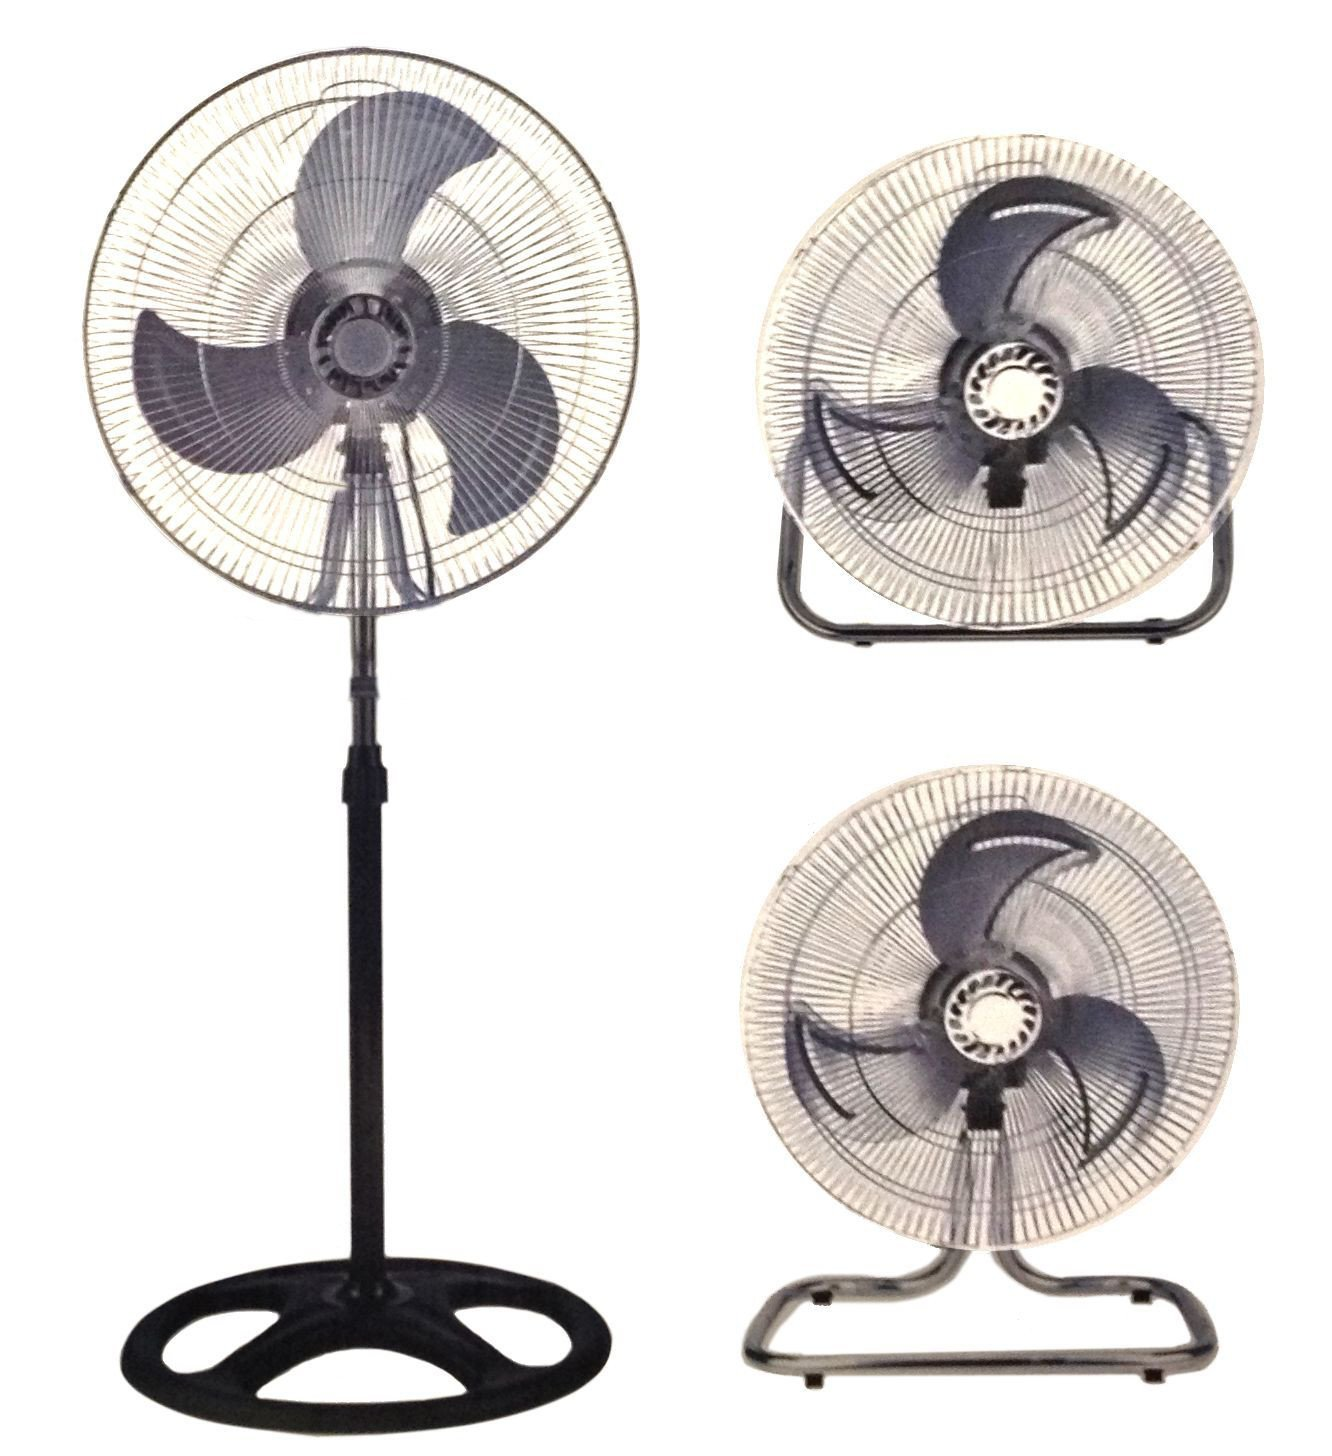 Unique Imports Industrial Fan 18″ Floor Stand Mount Shop Commercial High Velocity Oscillating – 2 Year Warranty